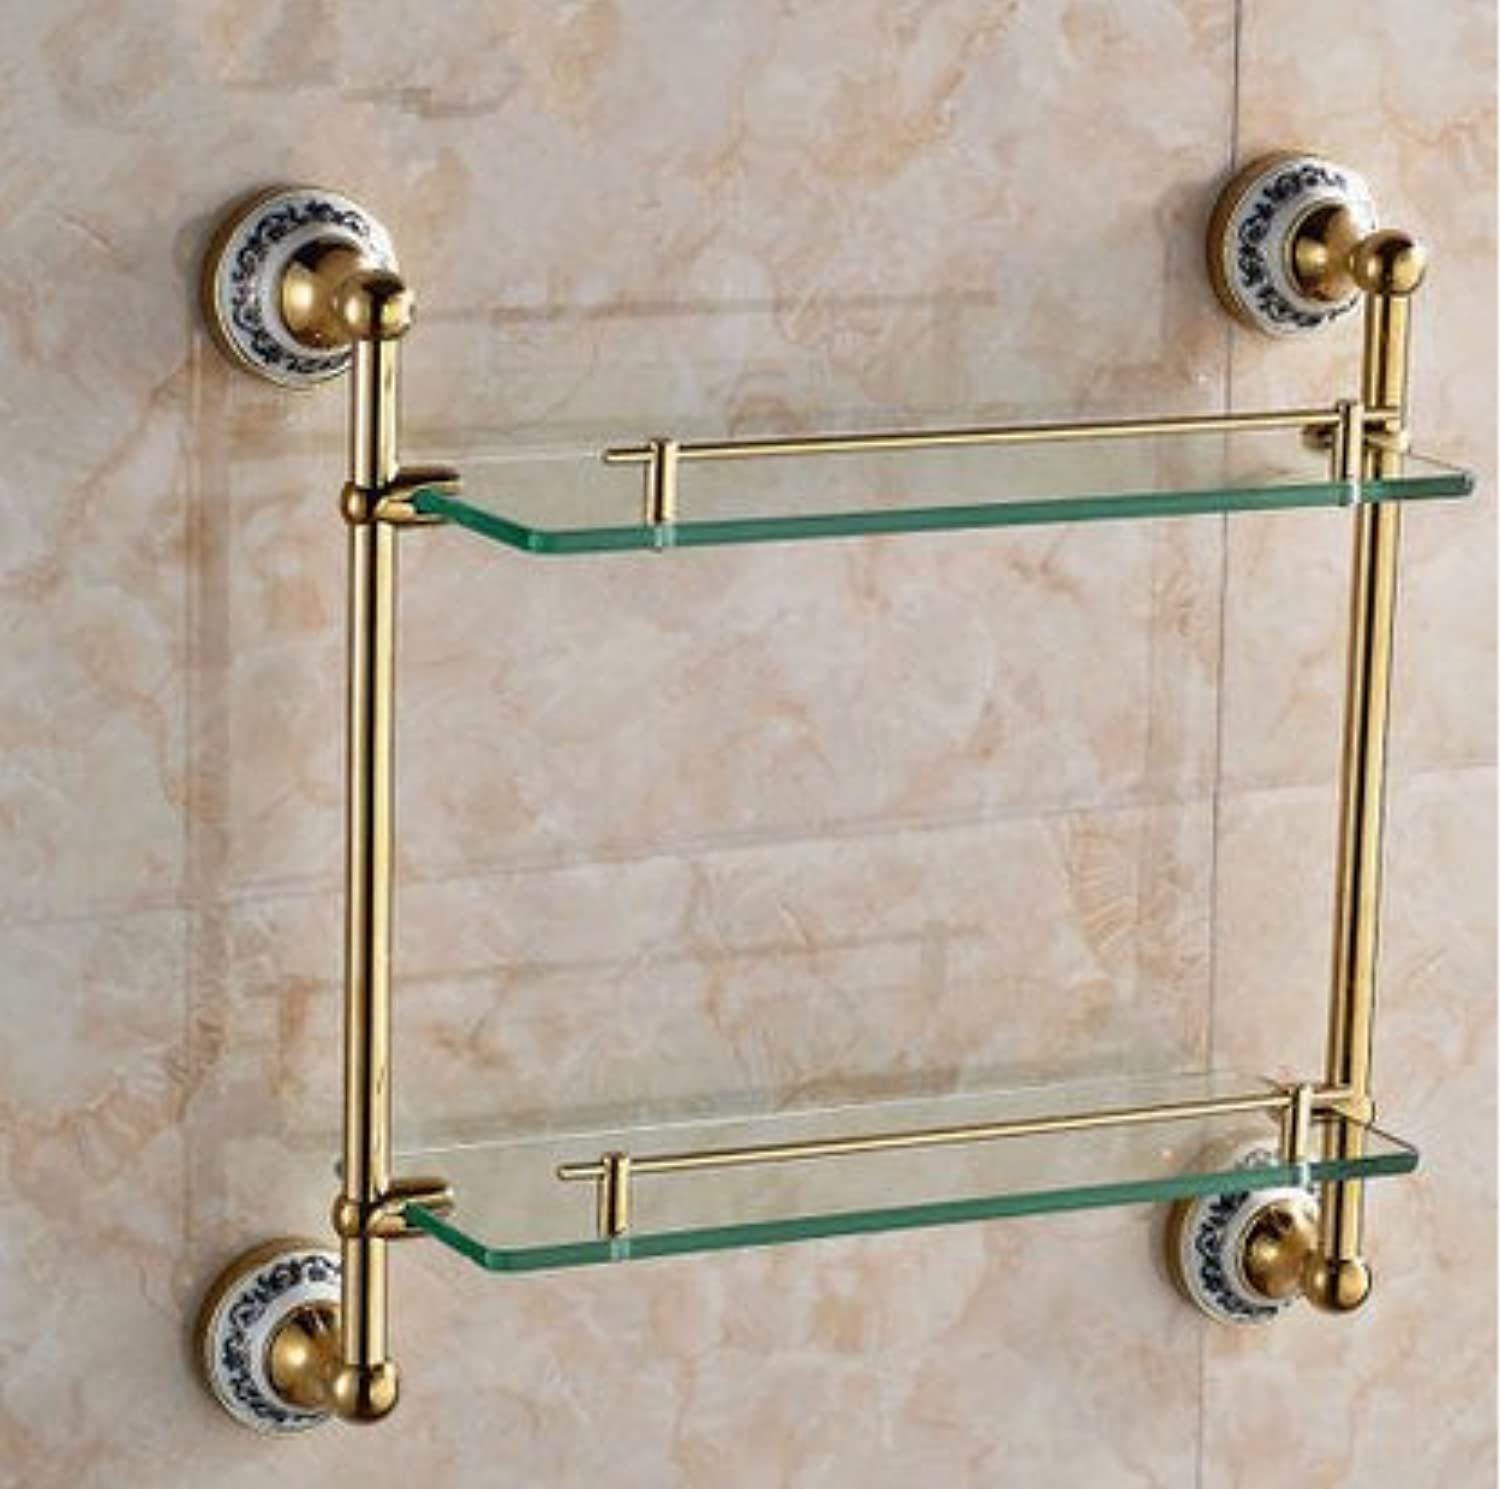 European blonde bathroom double glass shelf,B-@wei